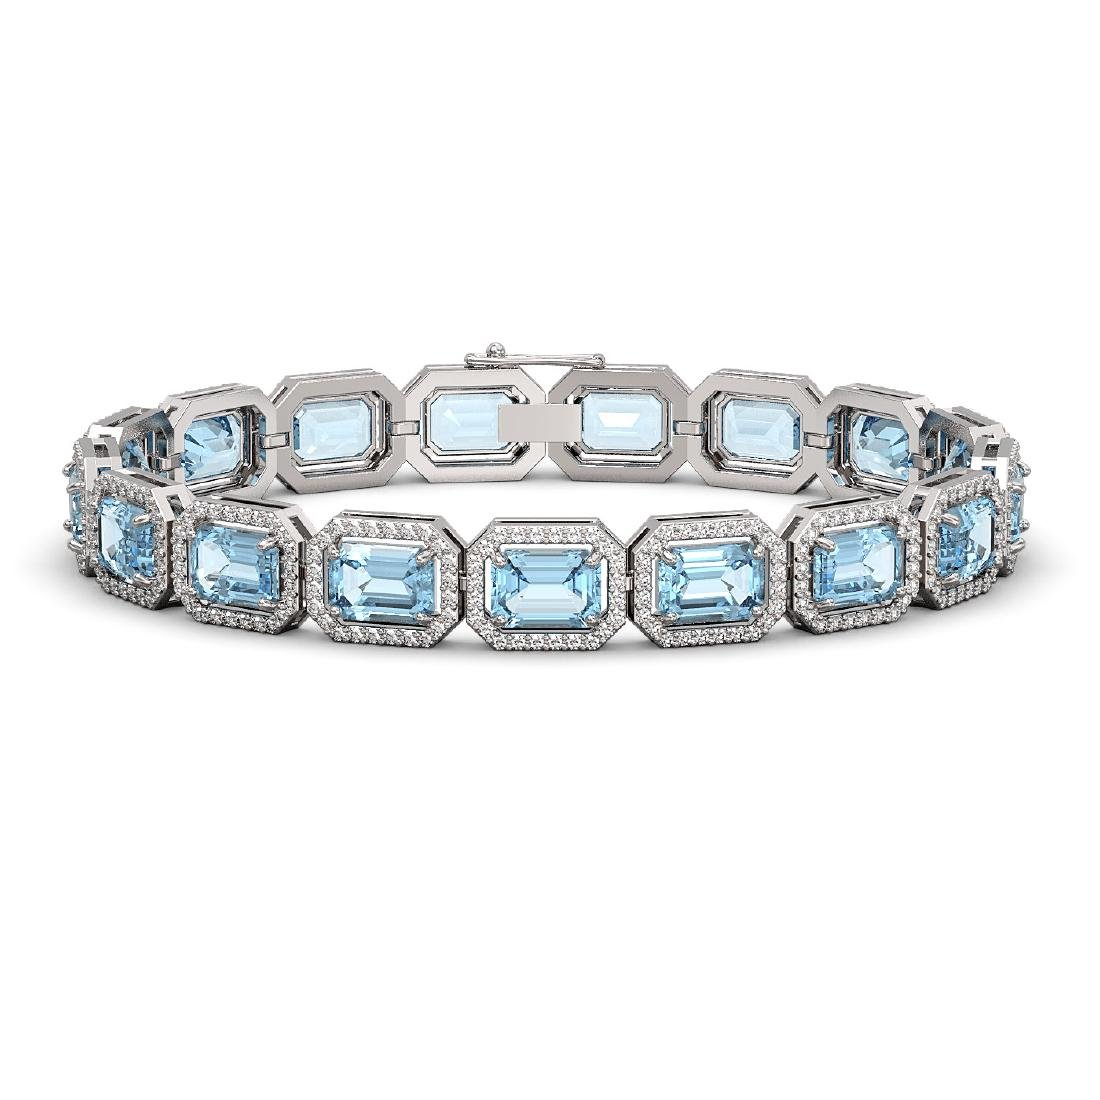 24.51 CTW Aquamarine & Diamond Halo Bracelet 10K White